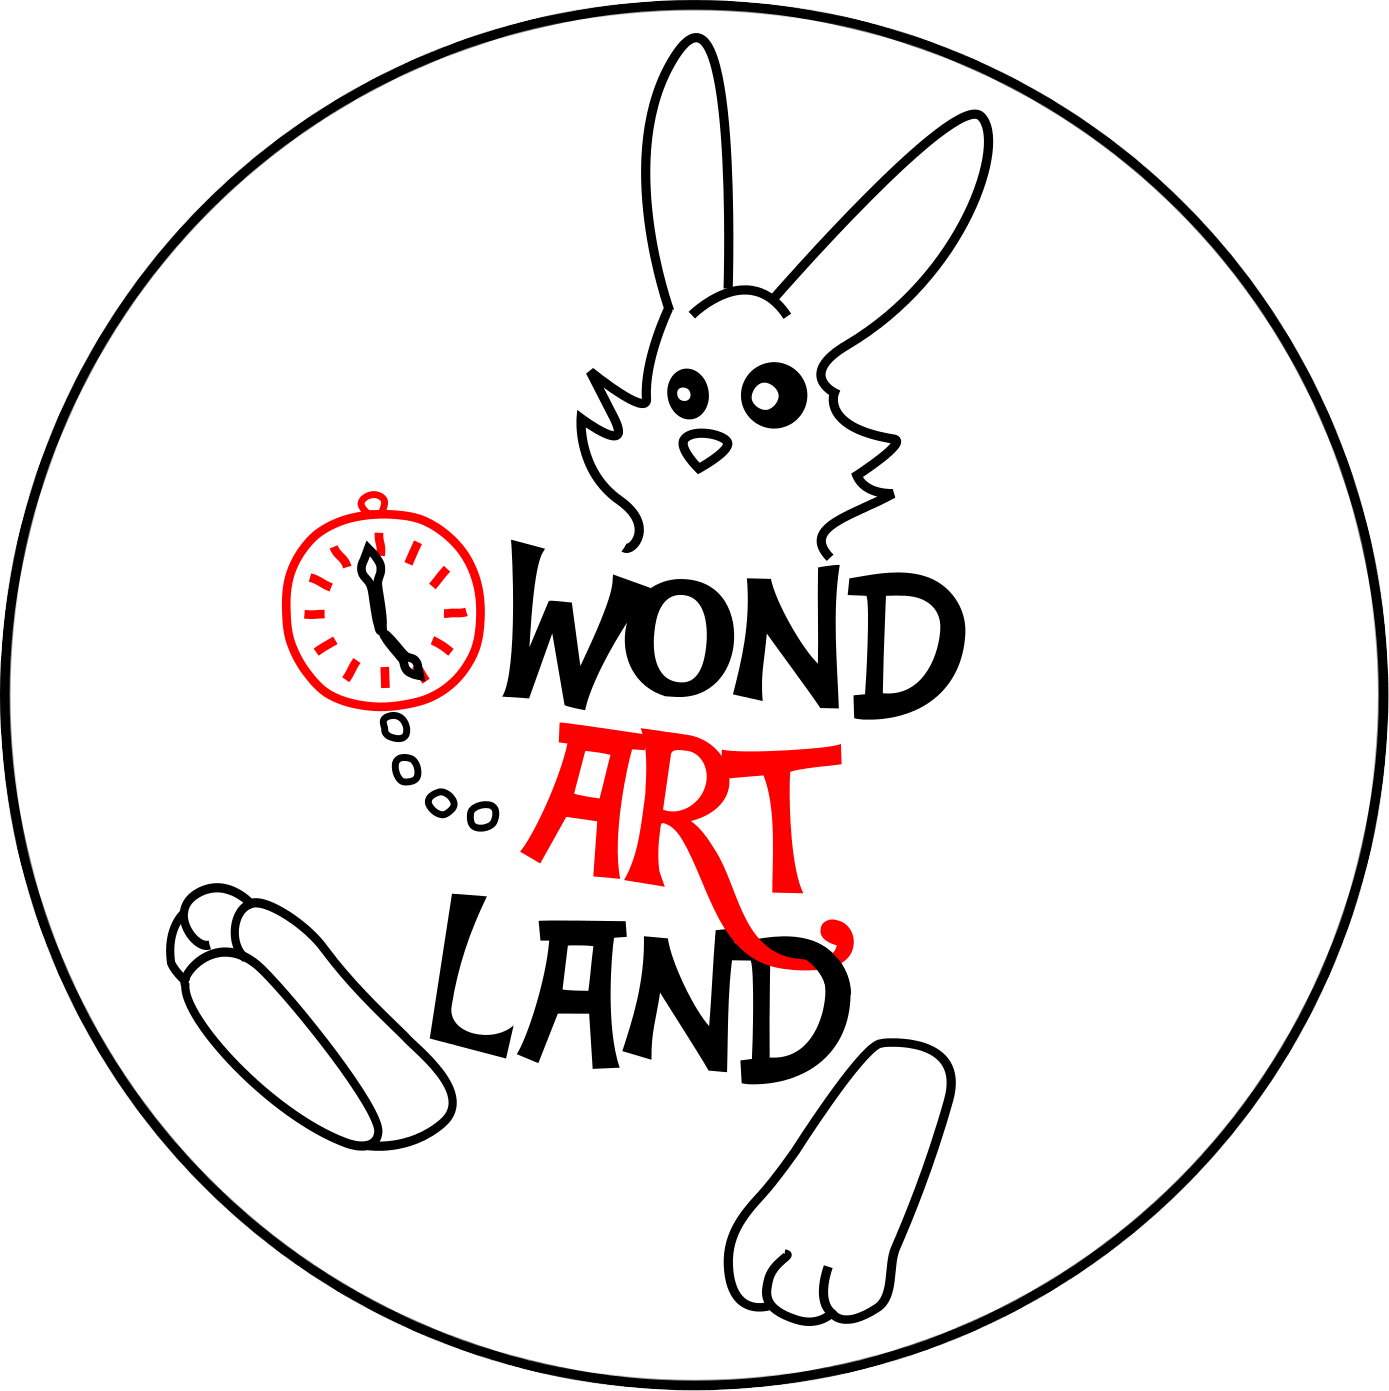 logo_Wond'Art'Land